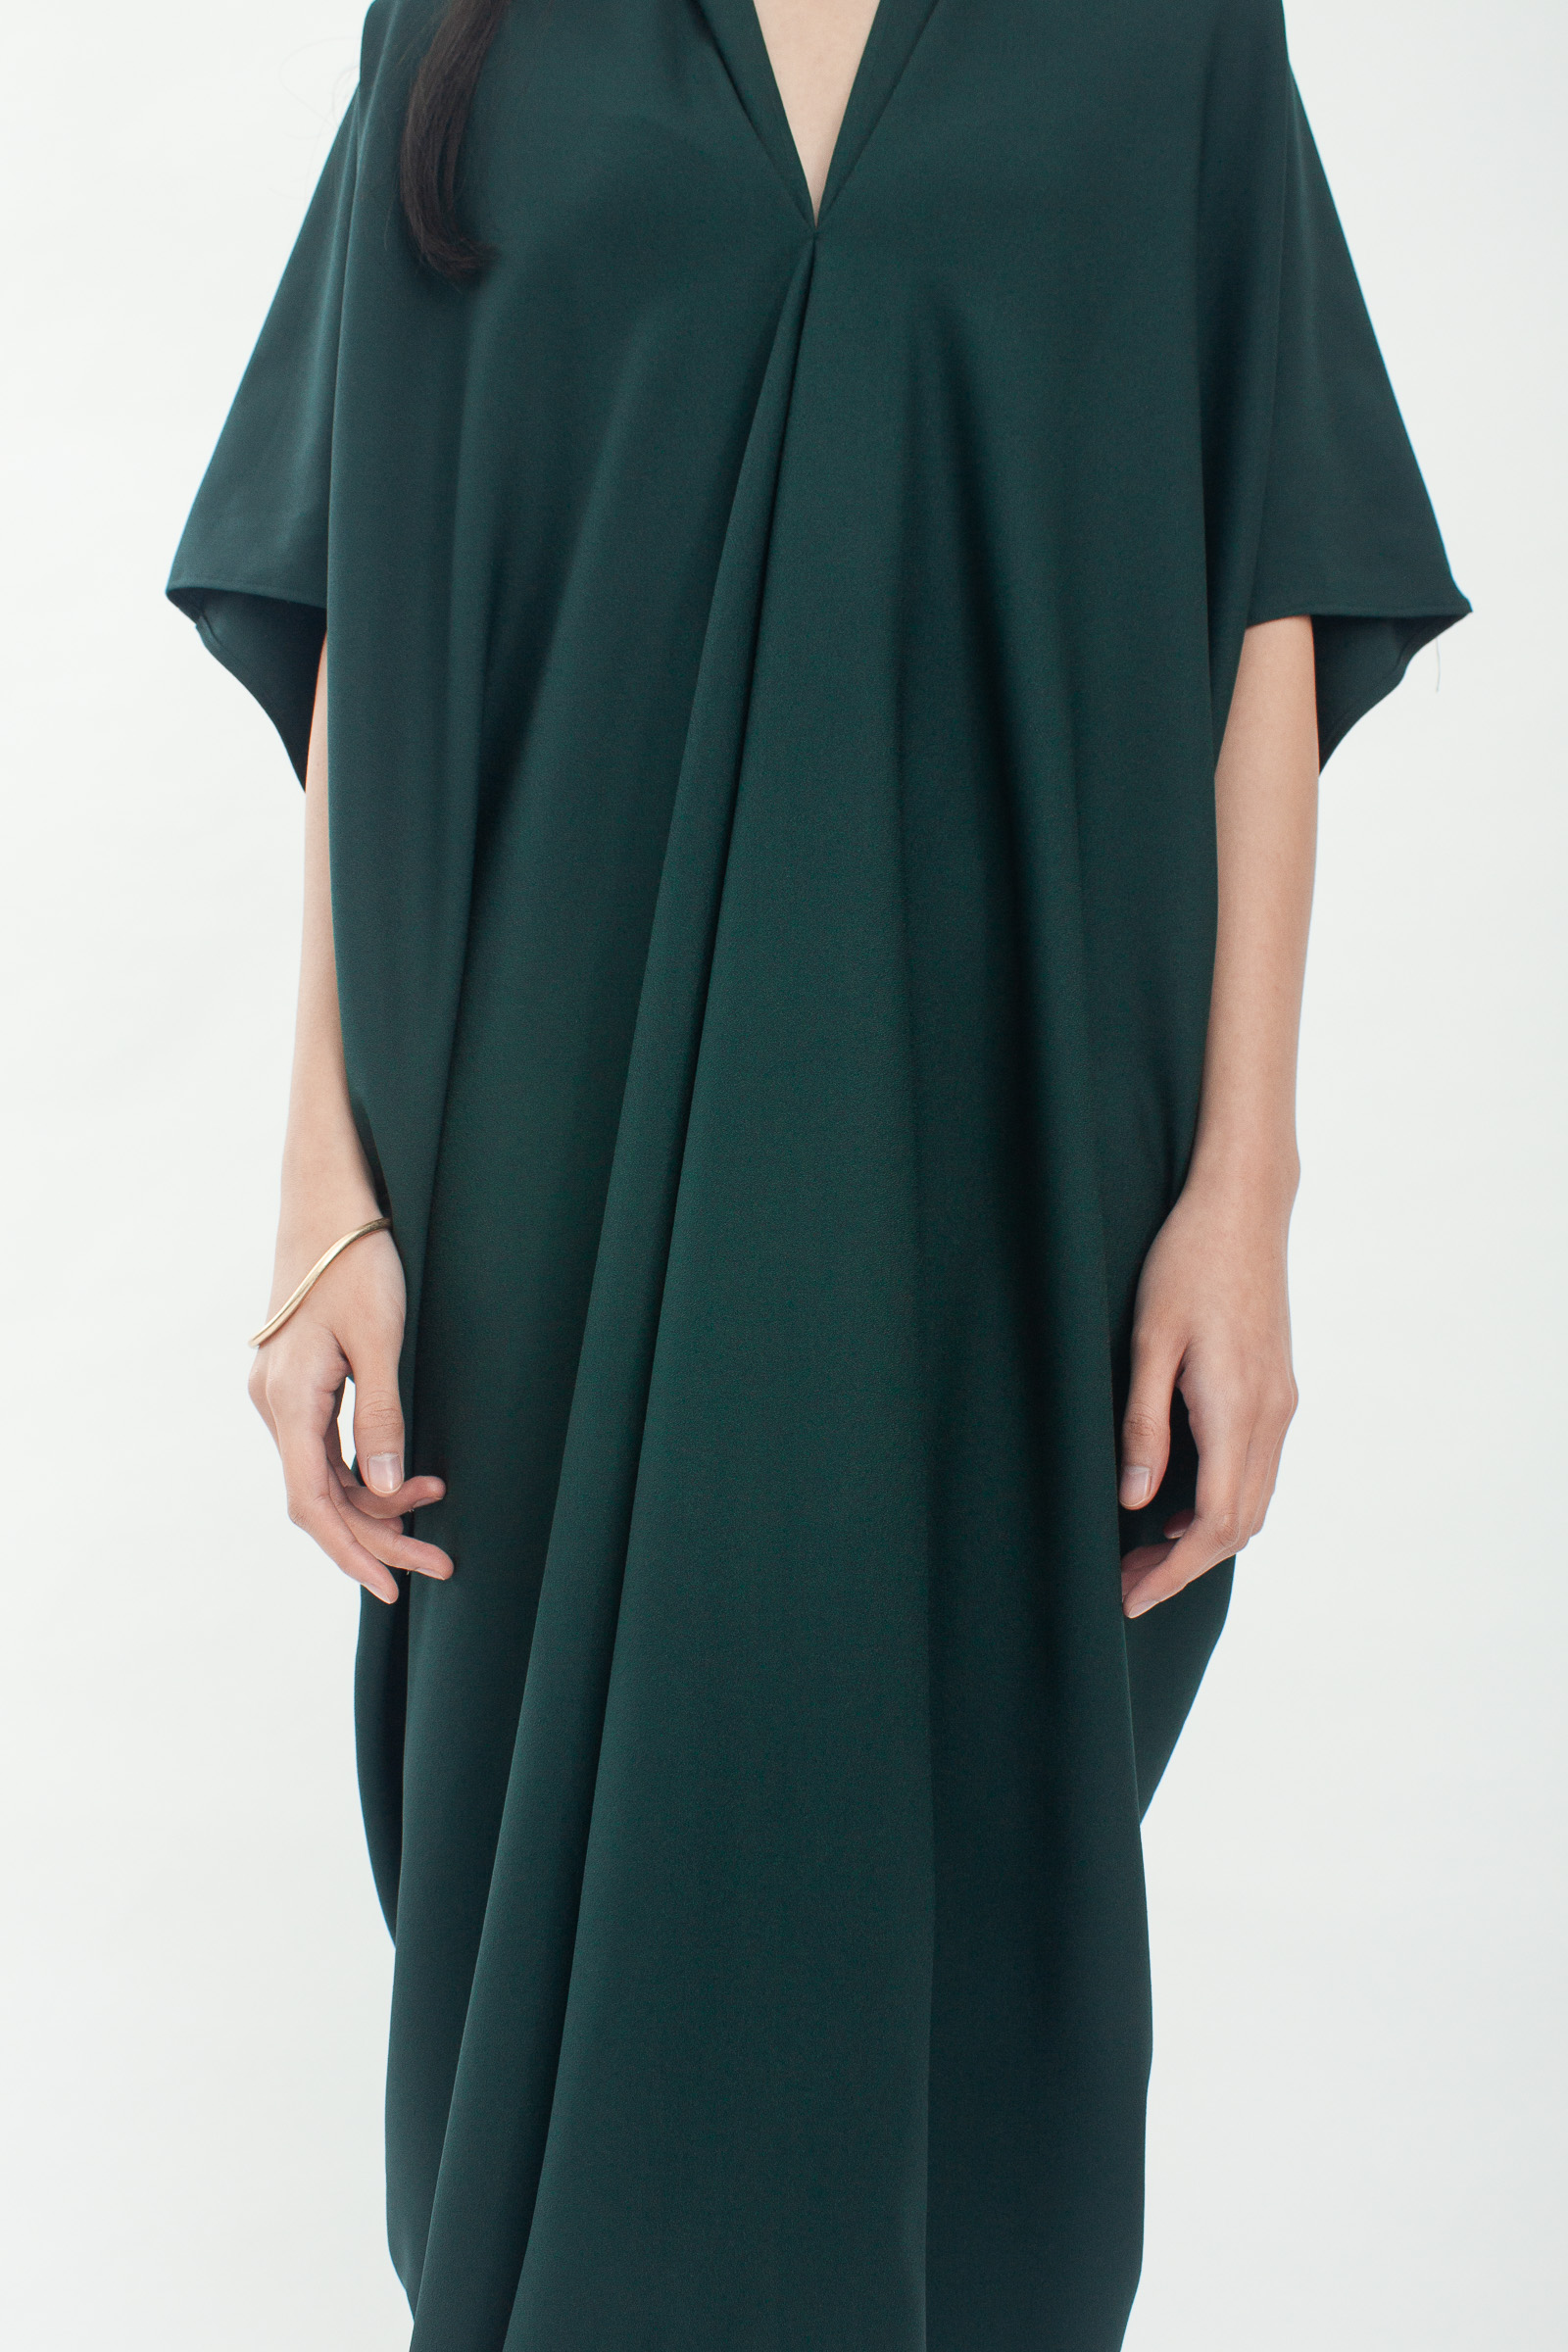 Shopatvelvet Noah Dress Green